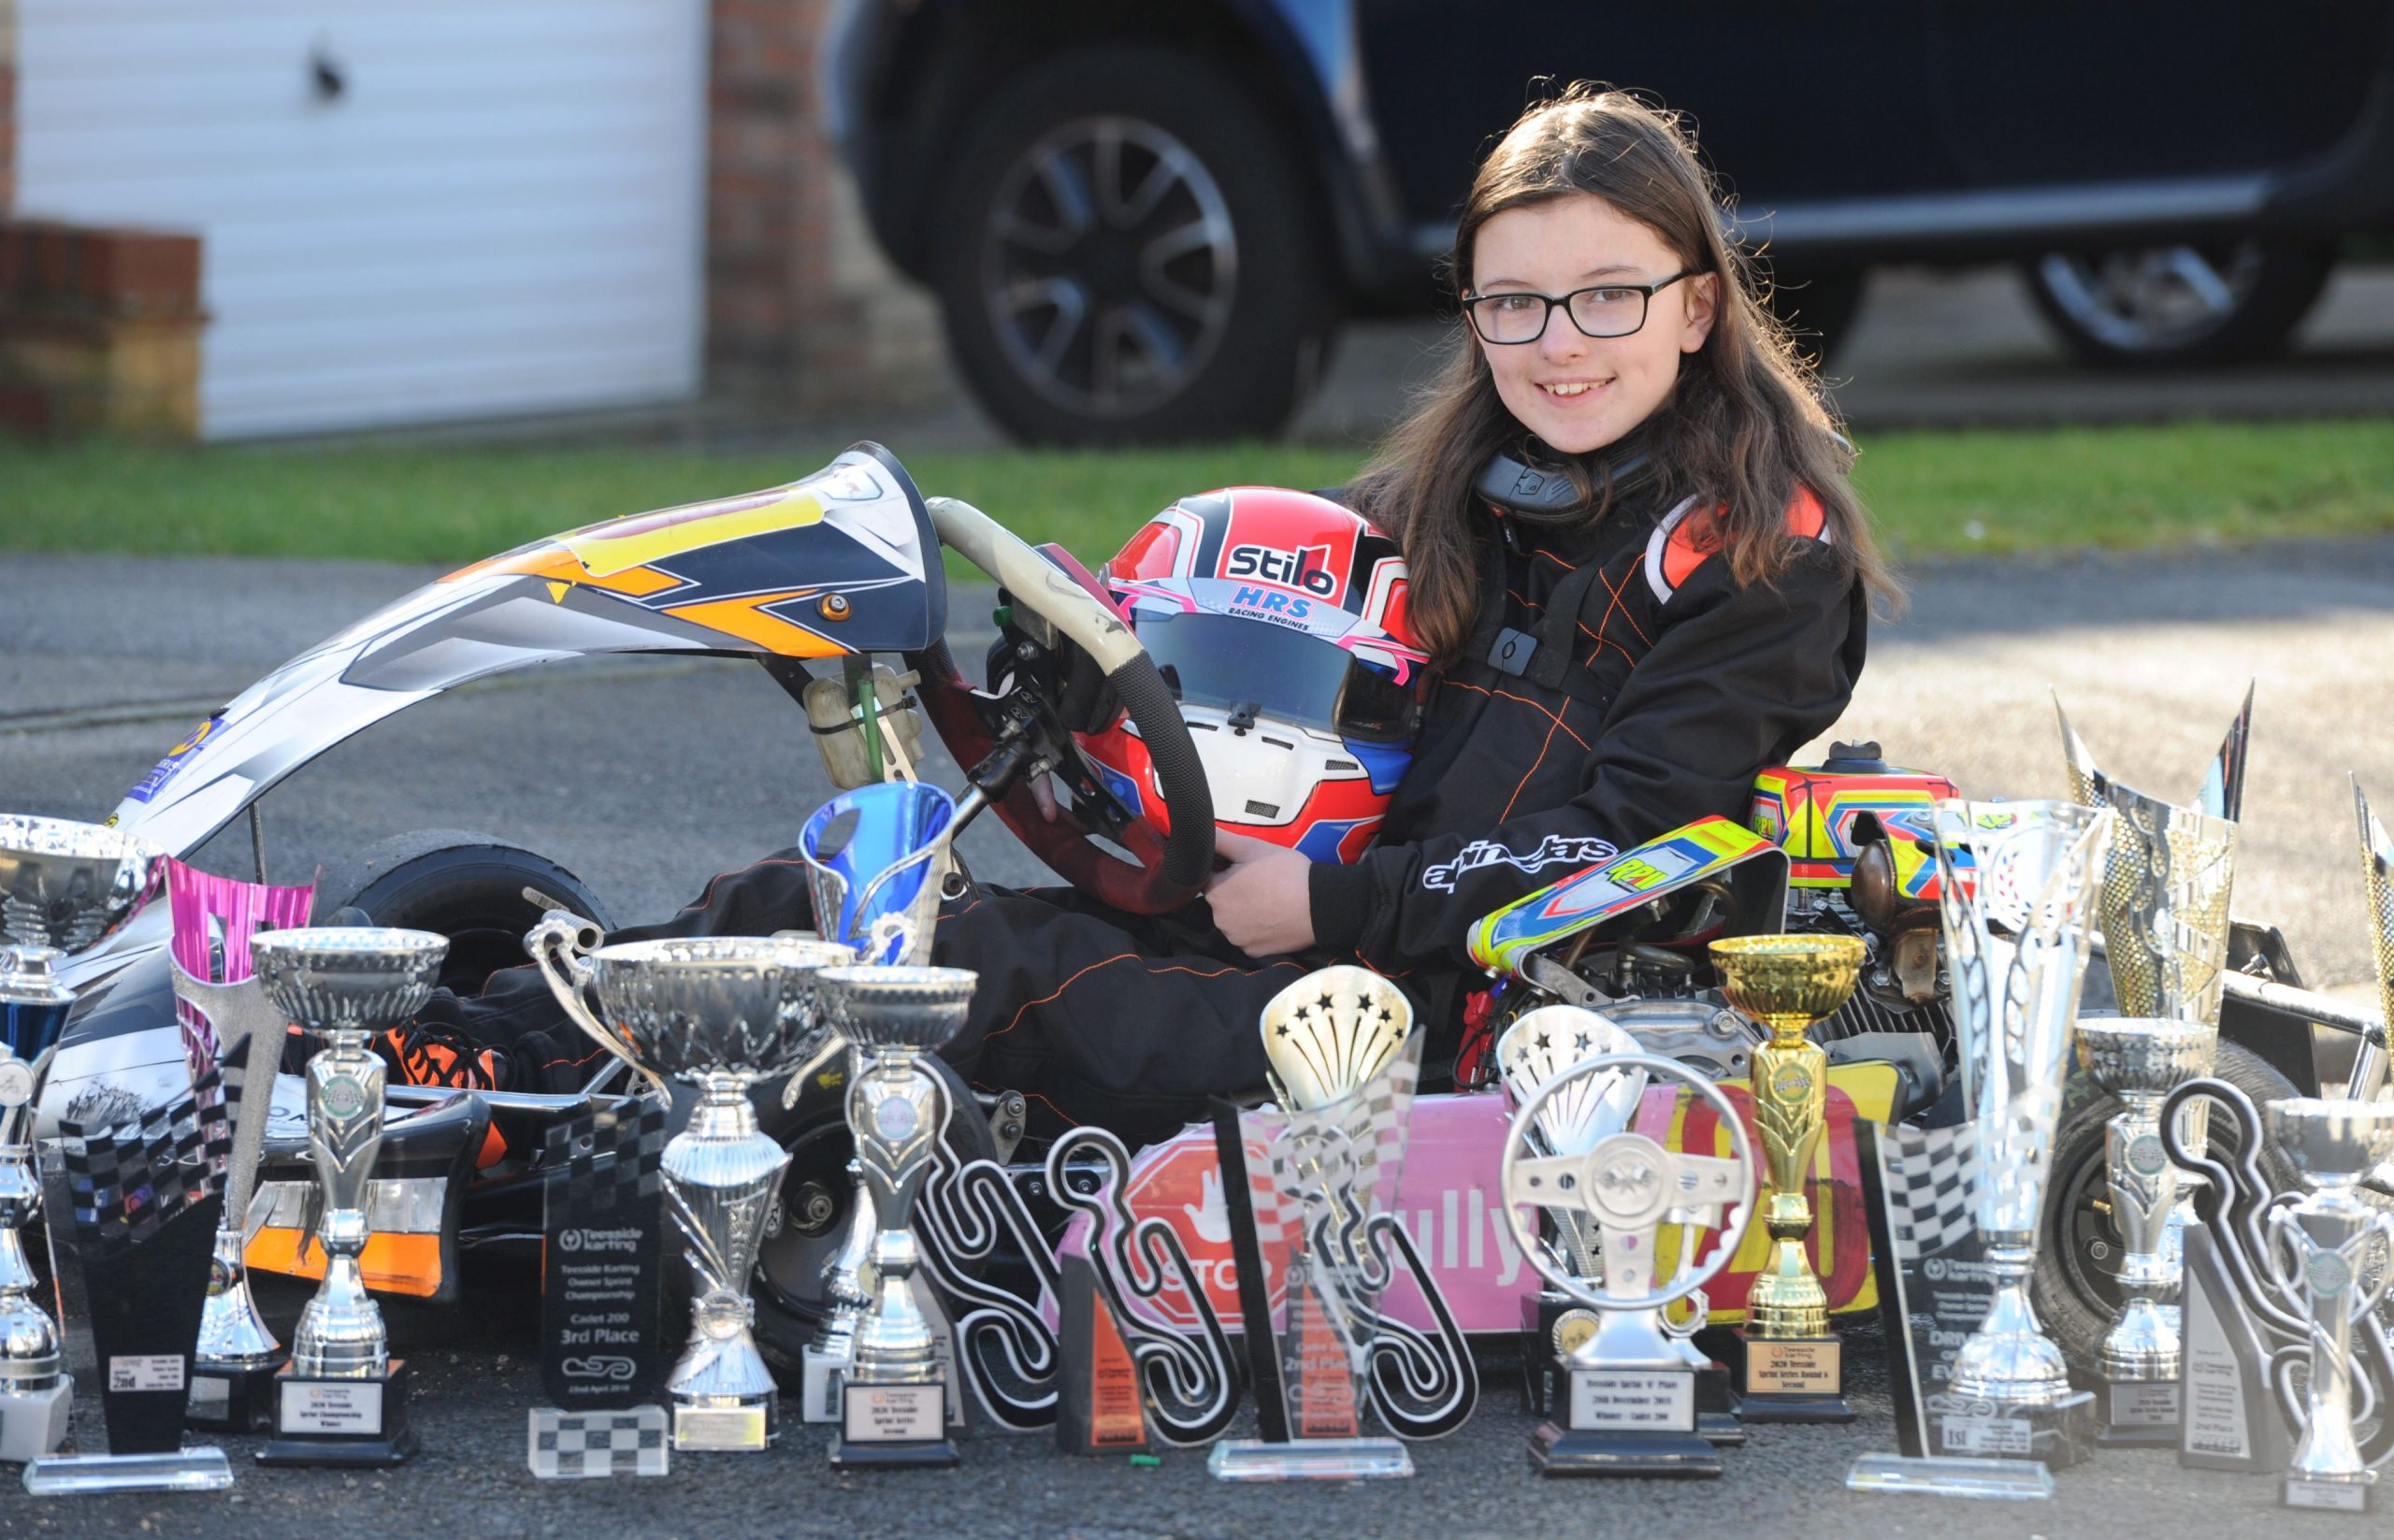 The 13-year old role model leading by example and winning on track